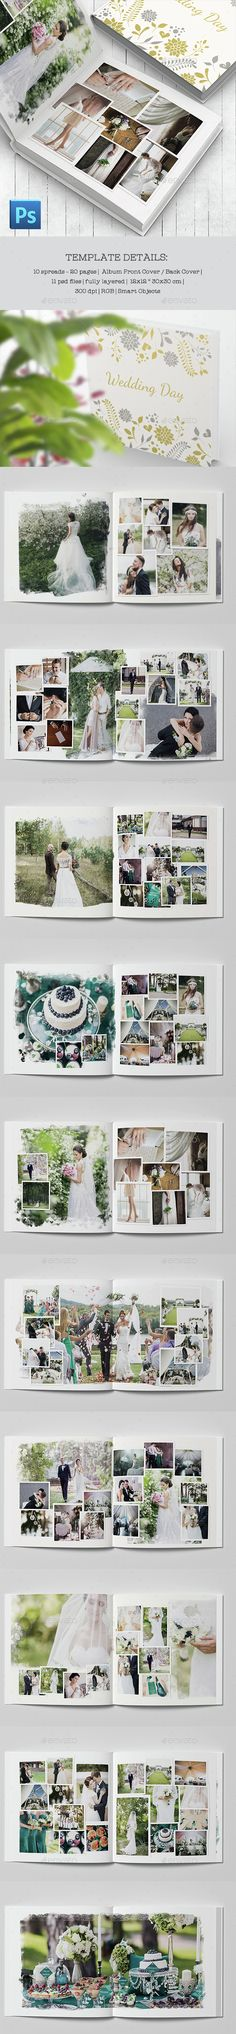 Wedding Photobook Template PSD. Download here: http://graphicriver.net/item/wedding-photobook-template/14911105?ref=ksioks